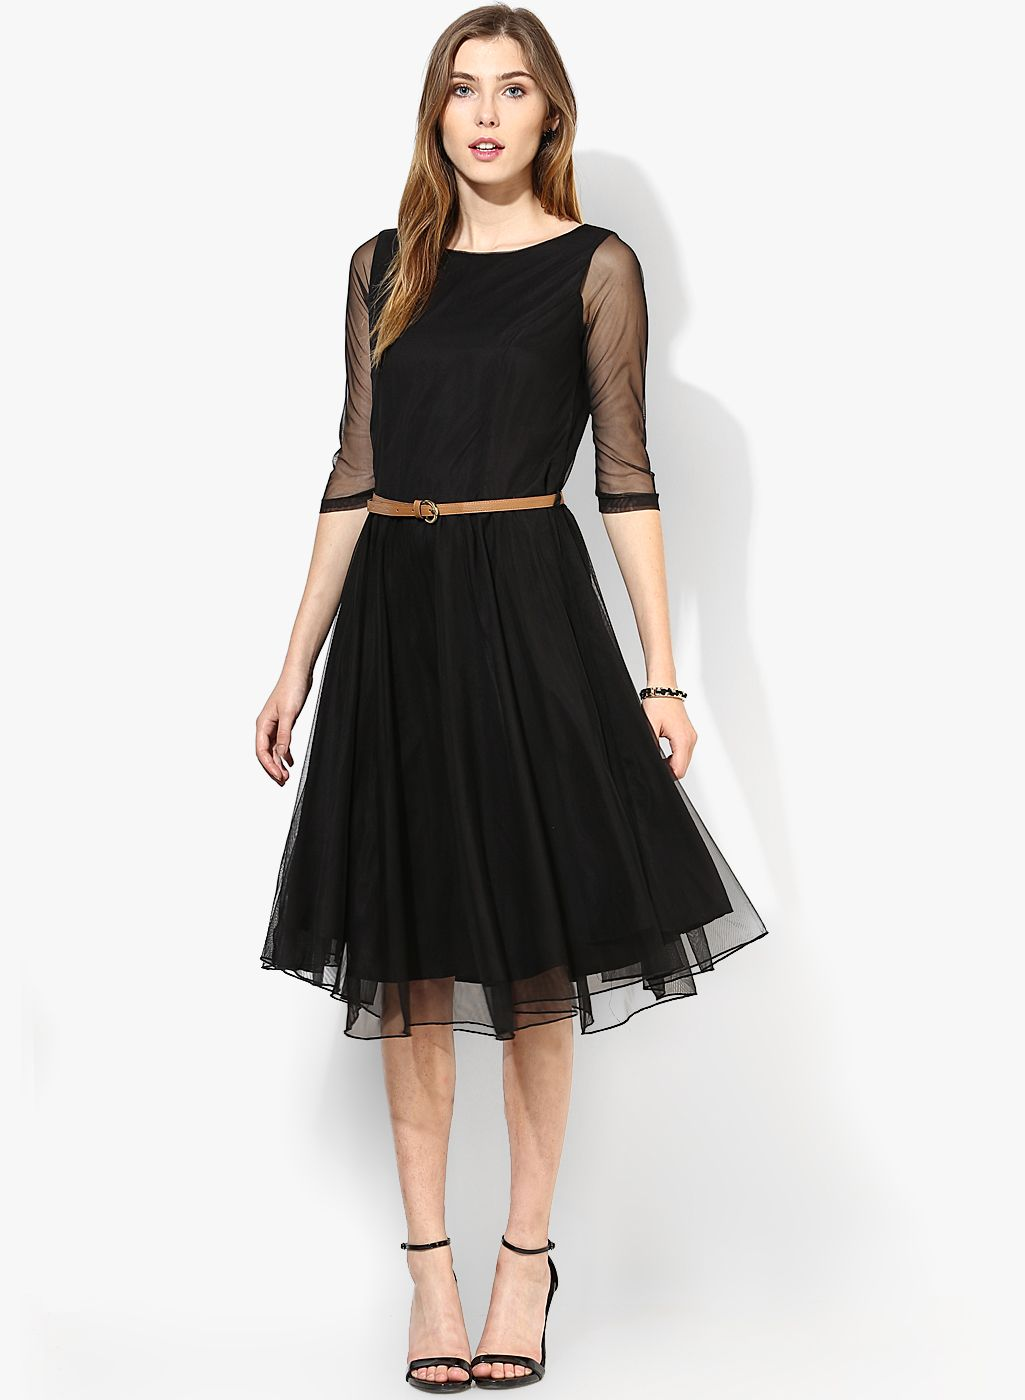 Buy MIAMINX Black Colored Solid Skater Dress for Women Online India, Best  Prices, Reviews